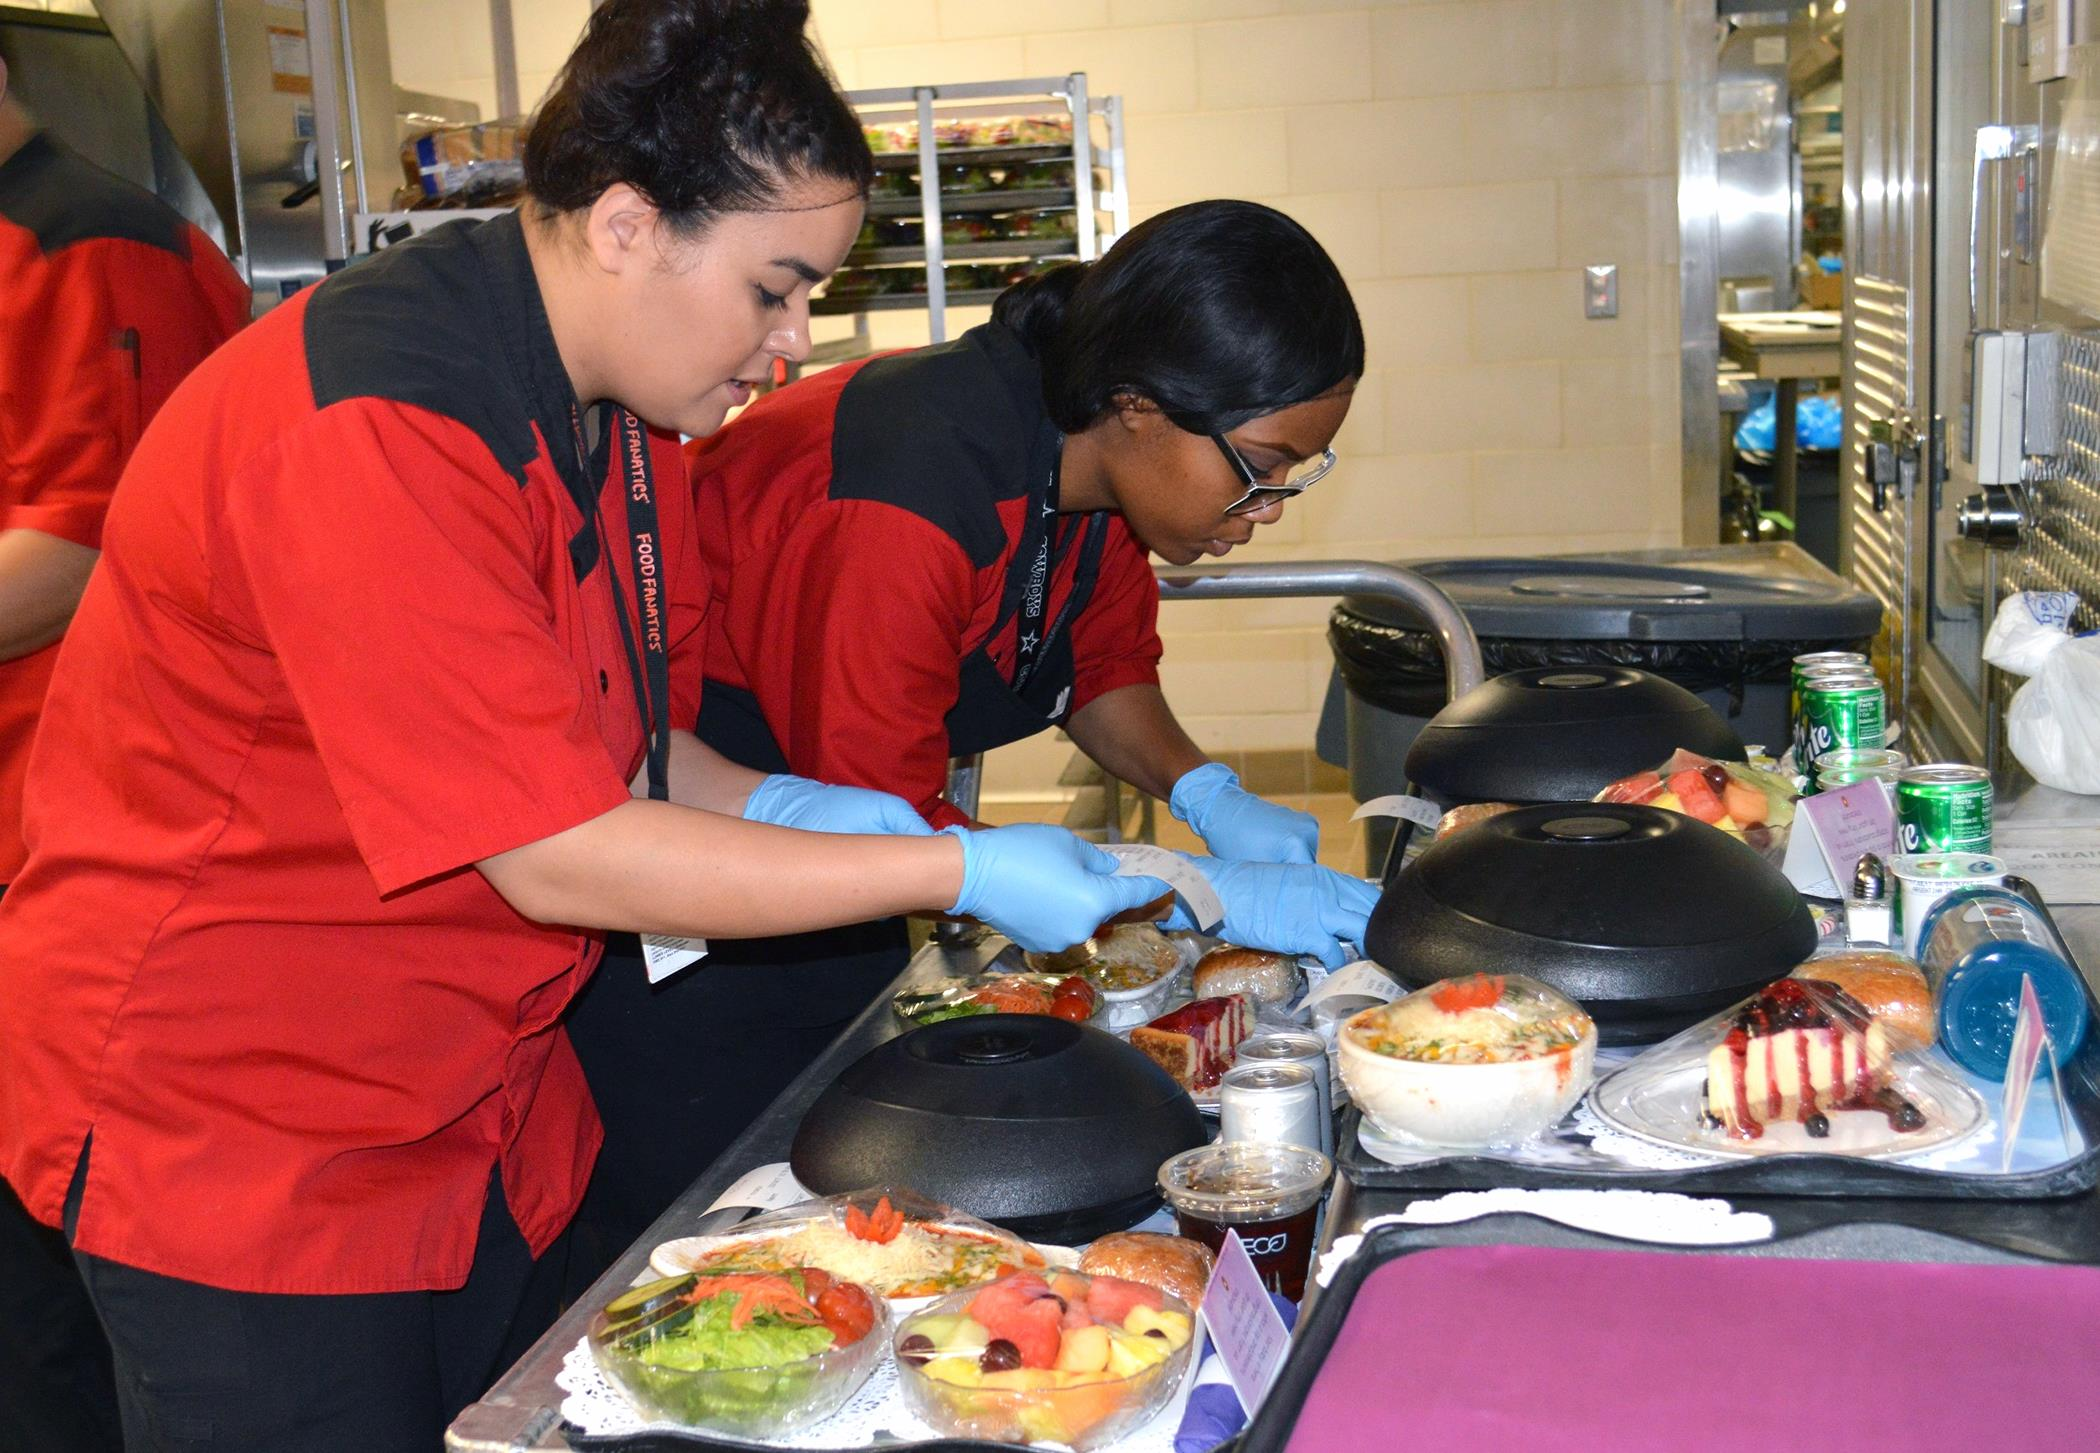 Bamc Nutritional Medicine Offers New Moms Special Meal Joint Base San Antonio News